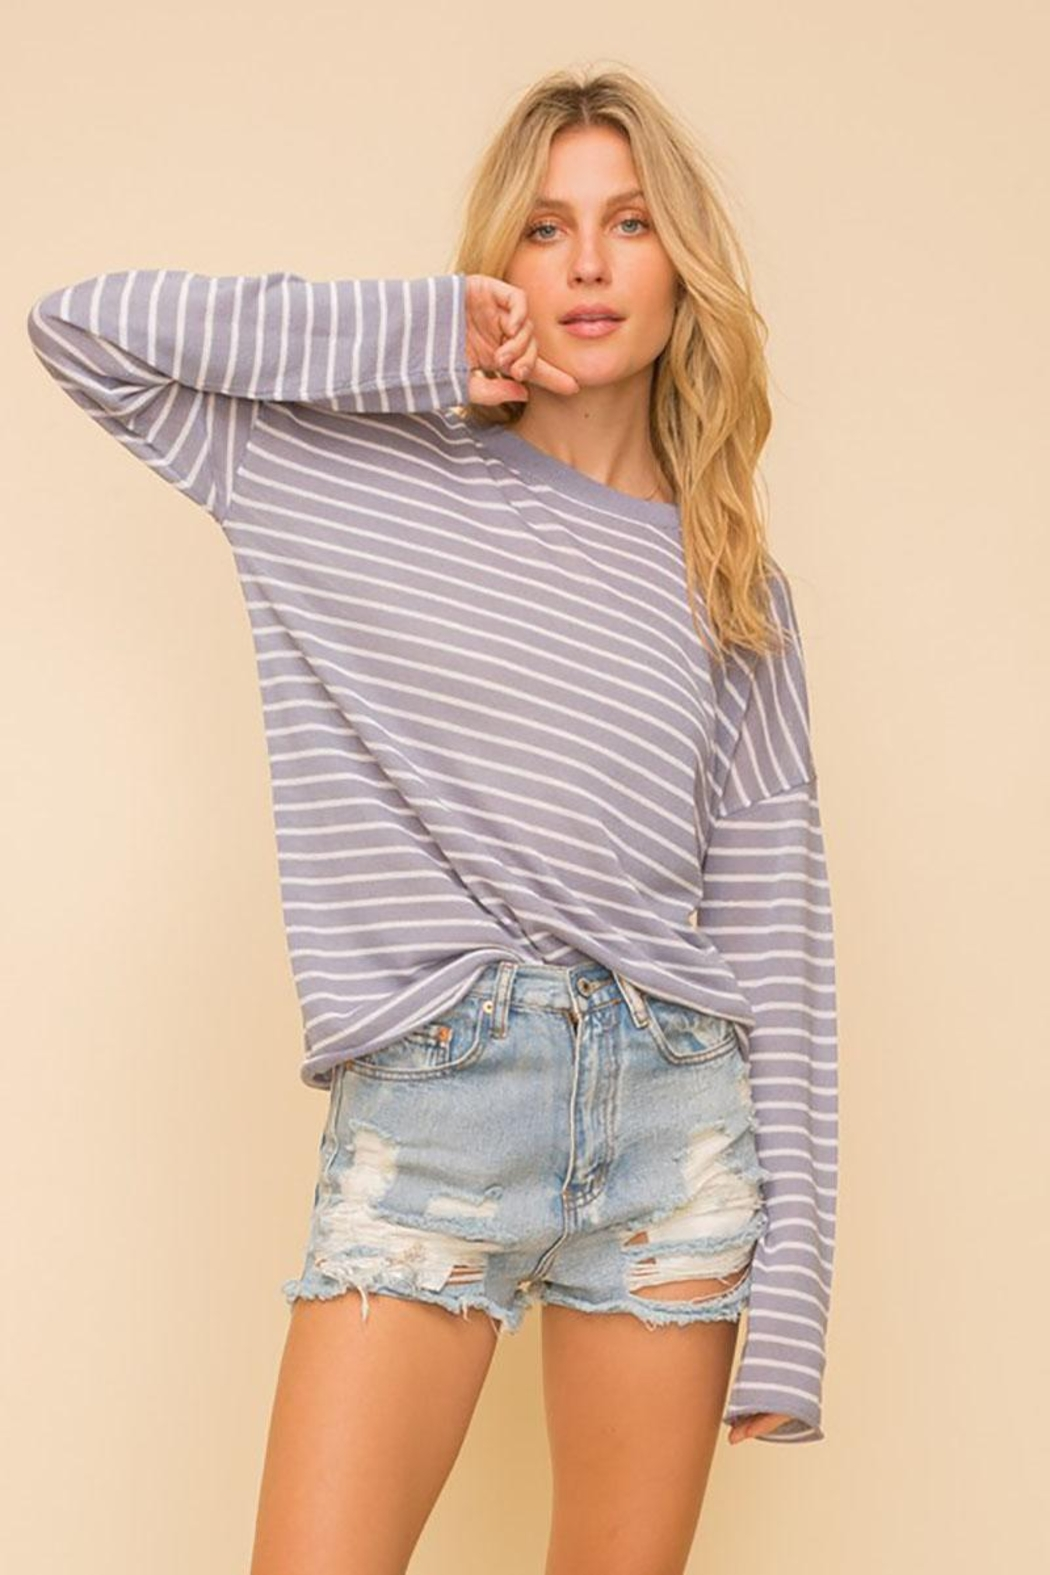 Mint Cloud Boutique Lightweight And Soft Stripe Pullover Sweater Top - Main Image